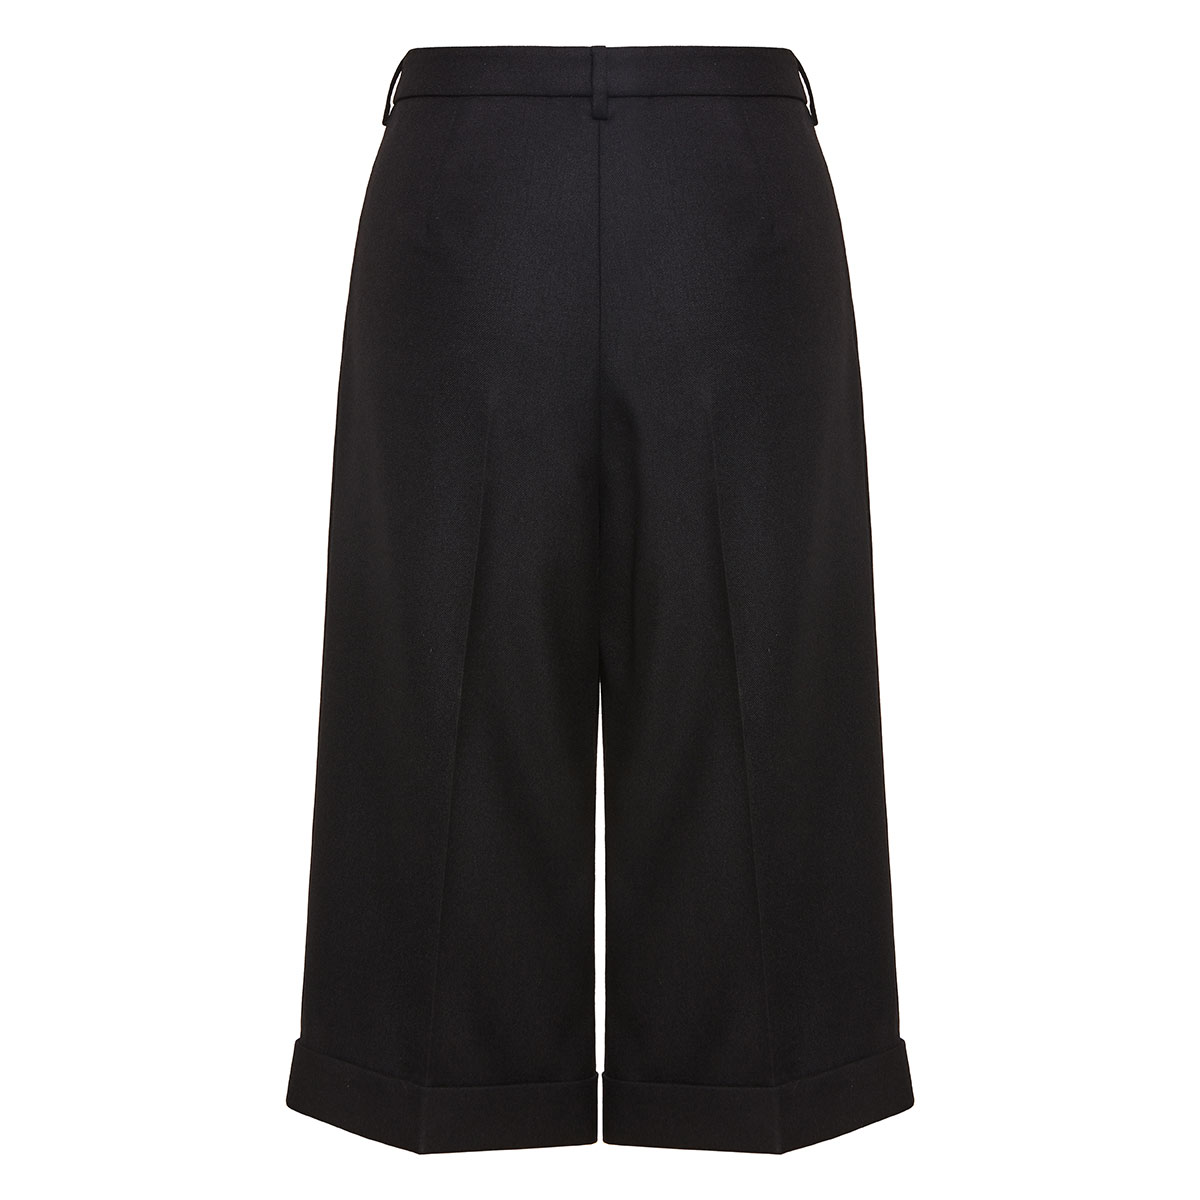 Long tailored bermuda shorts